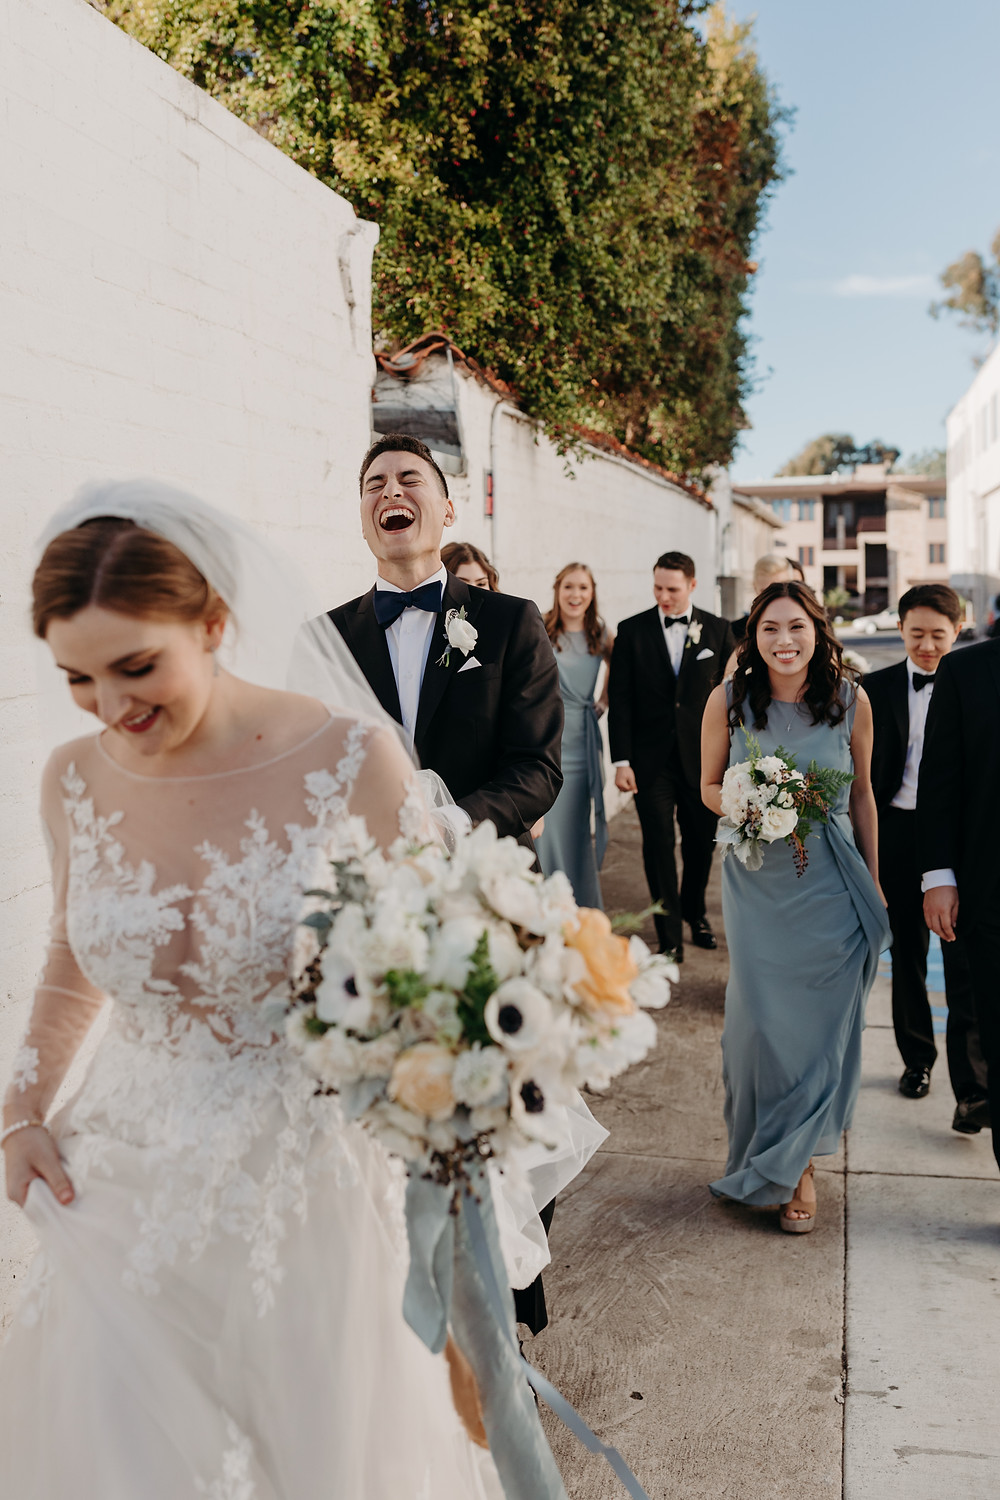 A Retro European Dinner Party Inspired Wedding At The Darlington House in La Jolla, CA